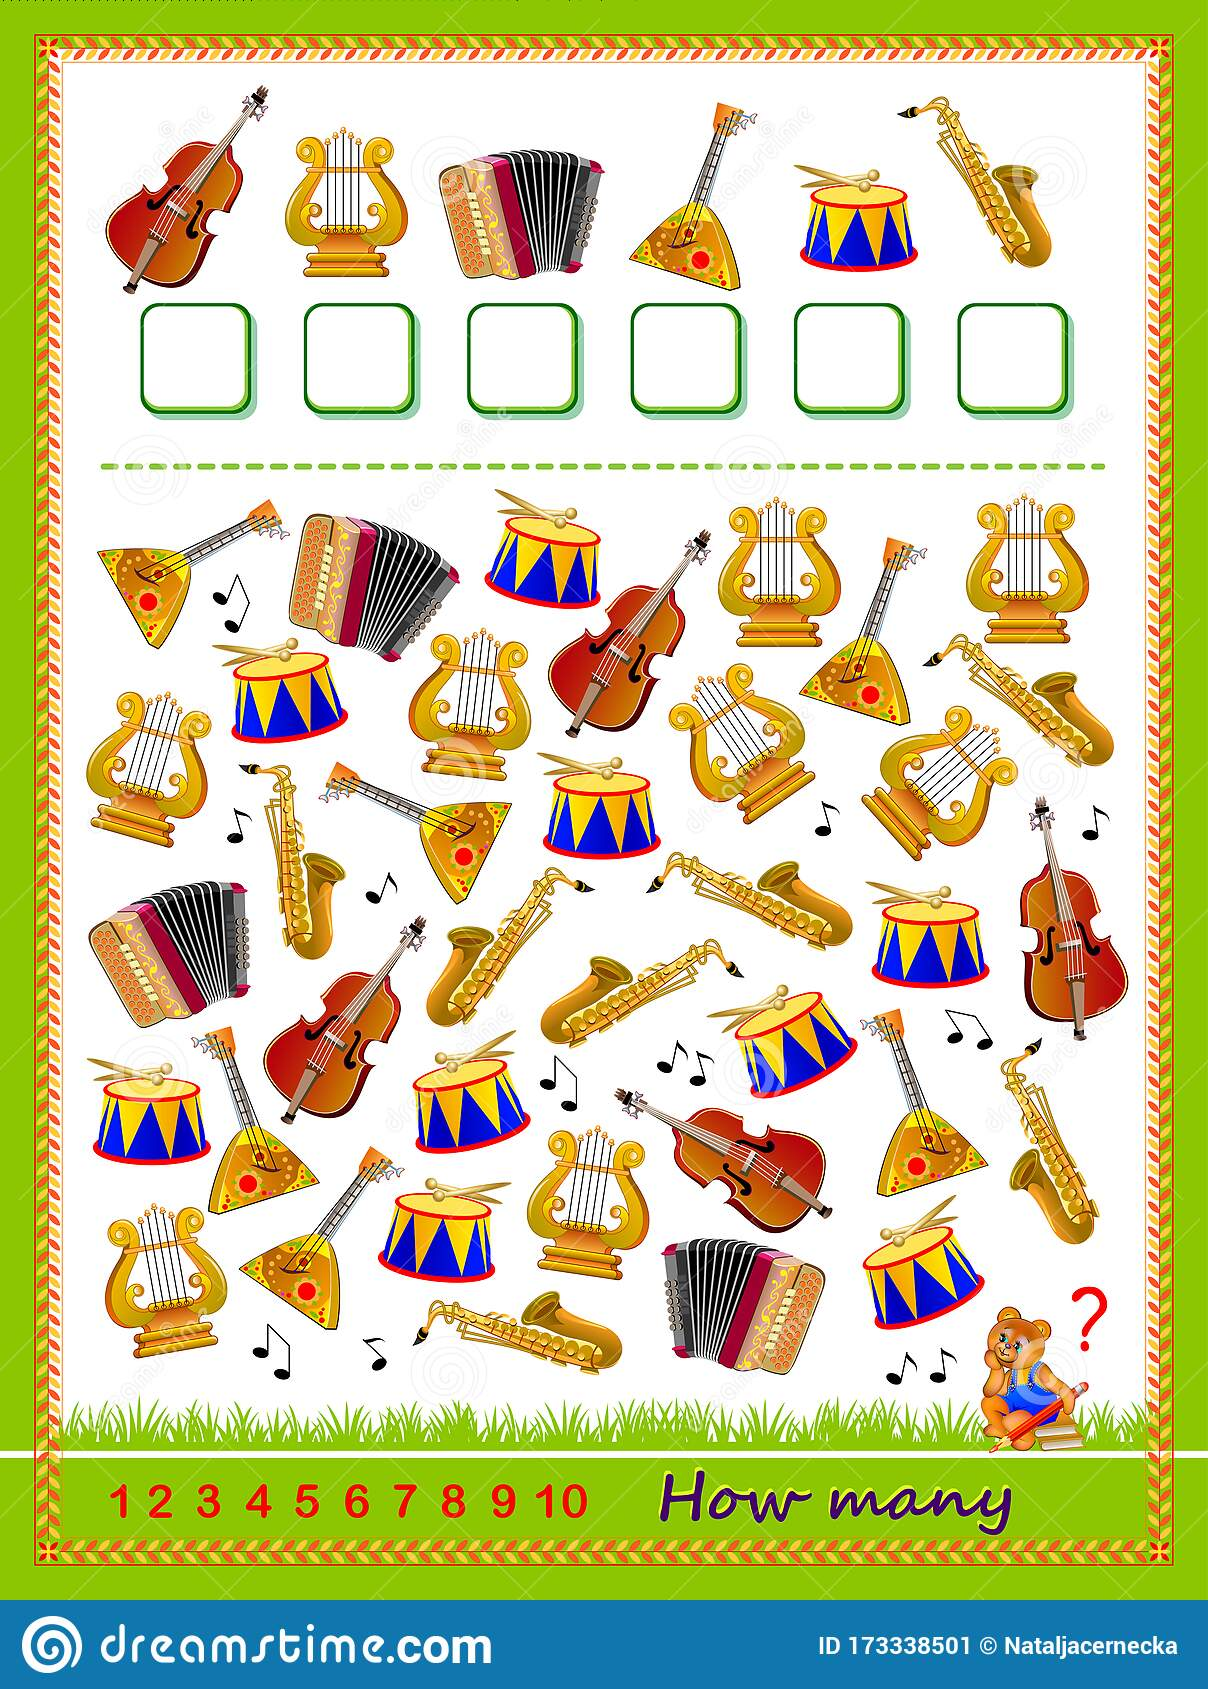 Math Education For Children Logic Puzzle Game Count